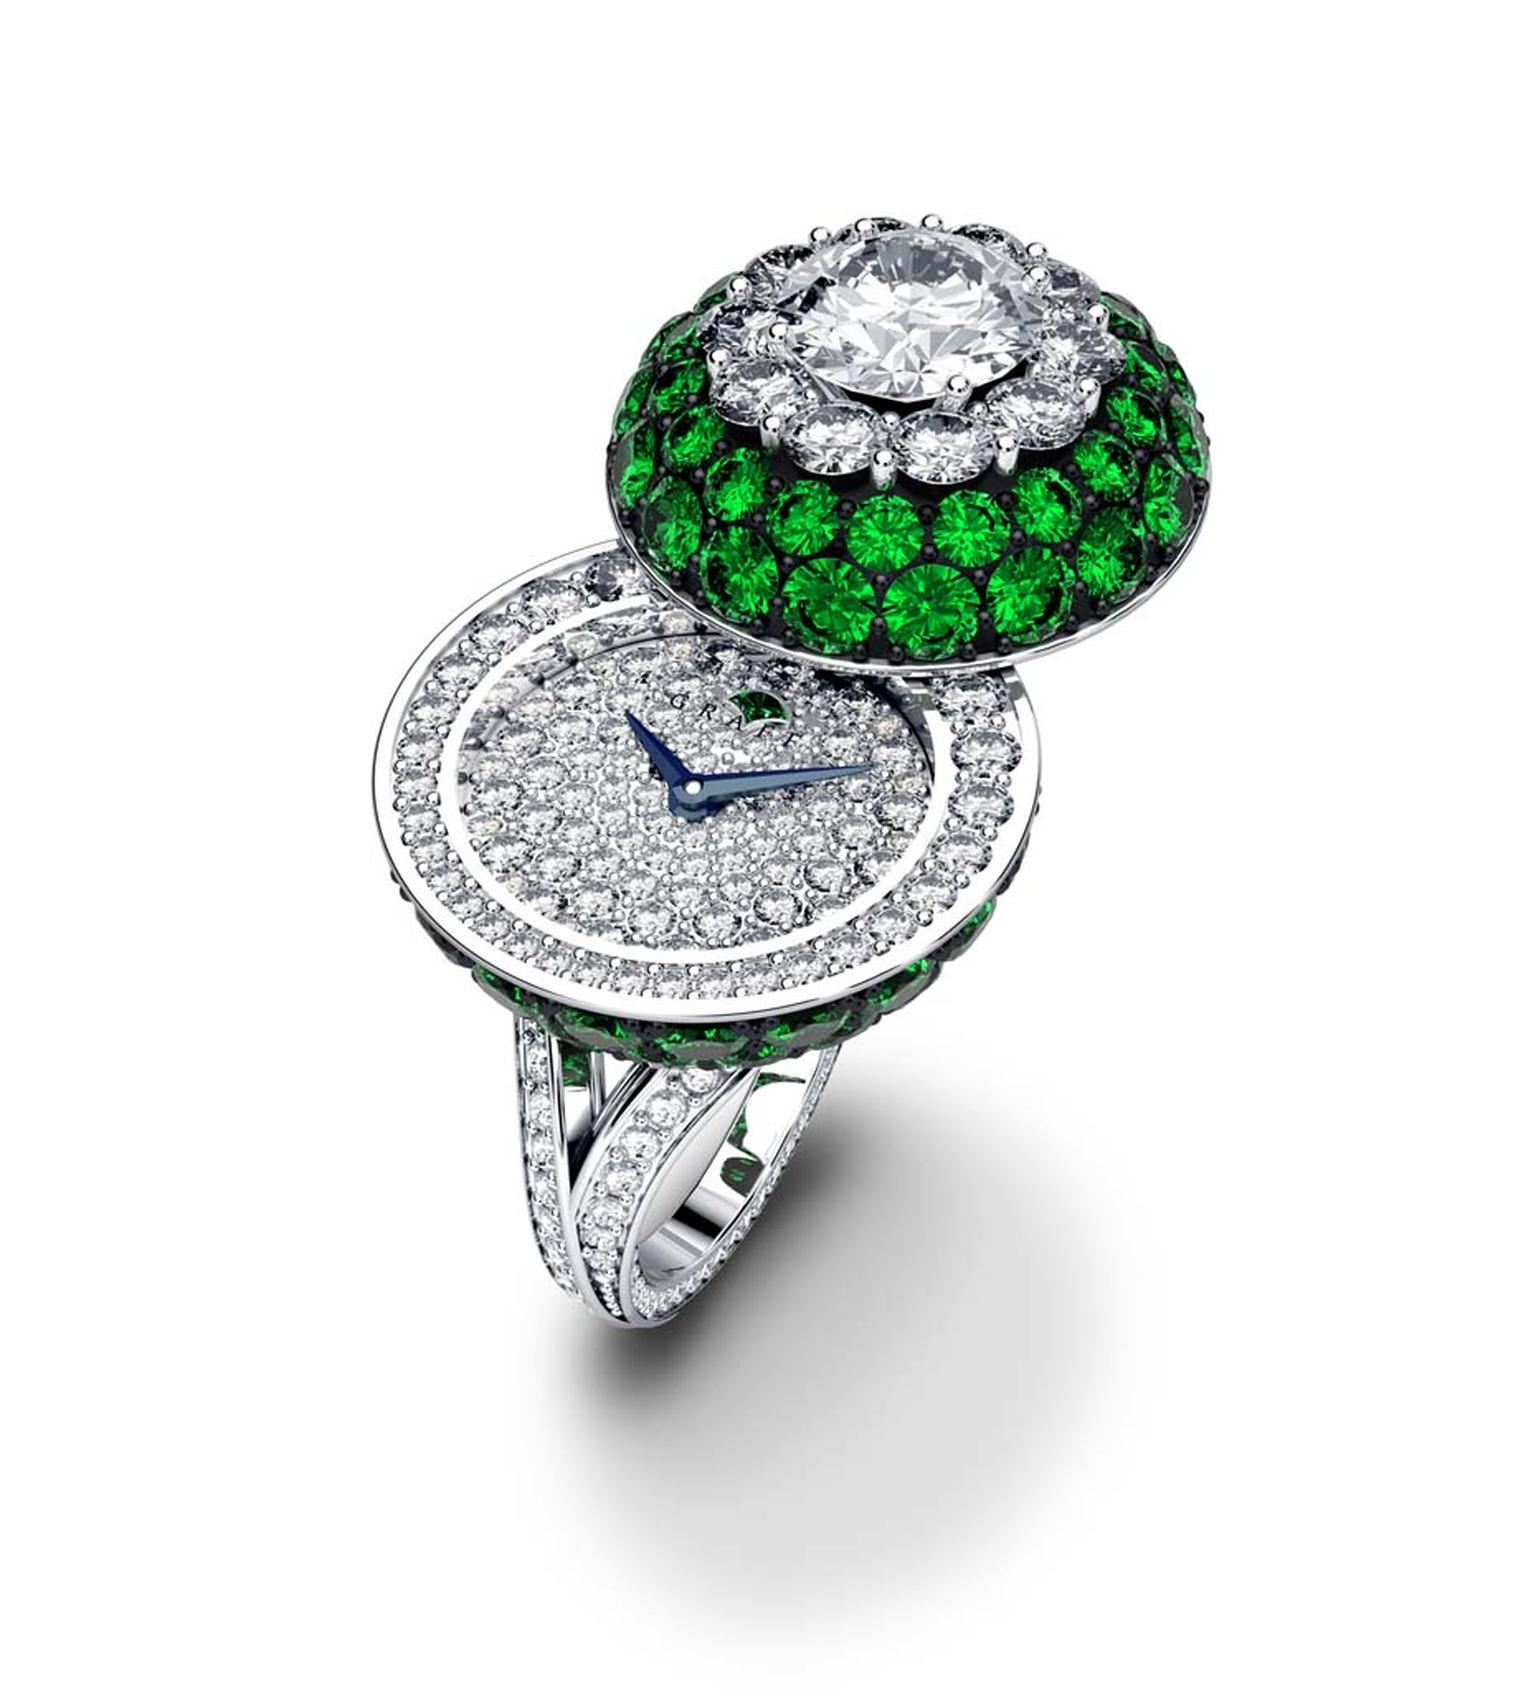 Graff Halo Secret Ring in white gold with diamonds and emeralds.